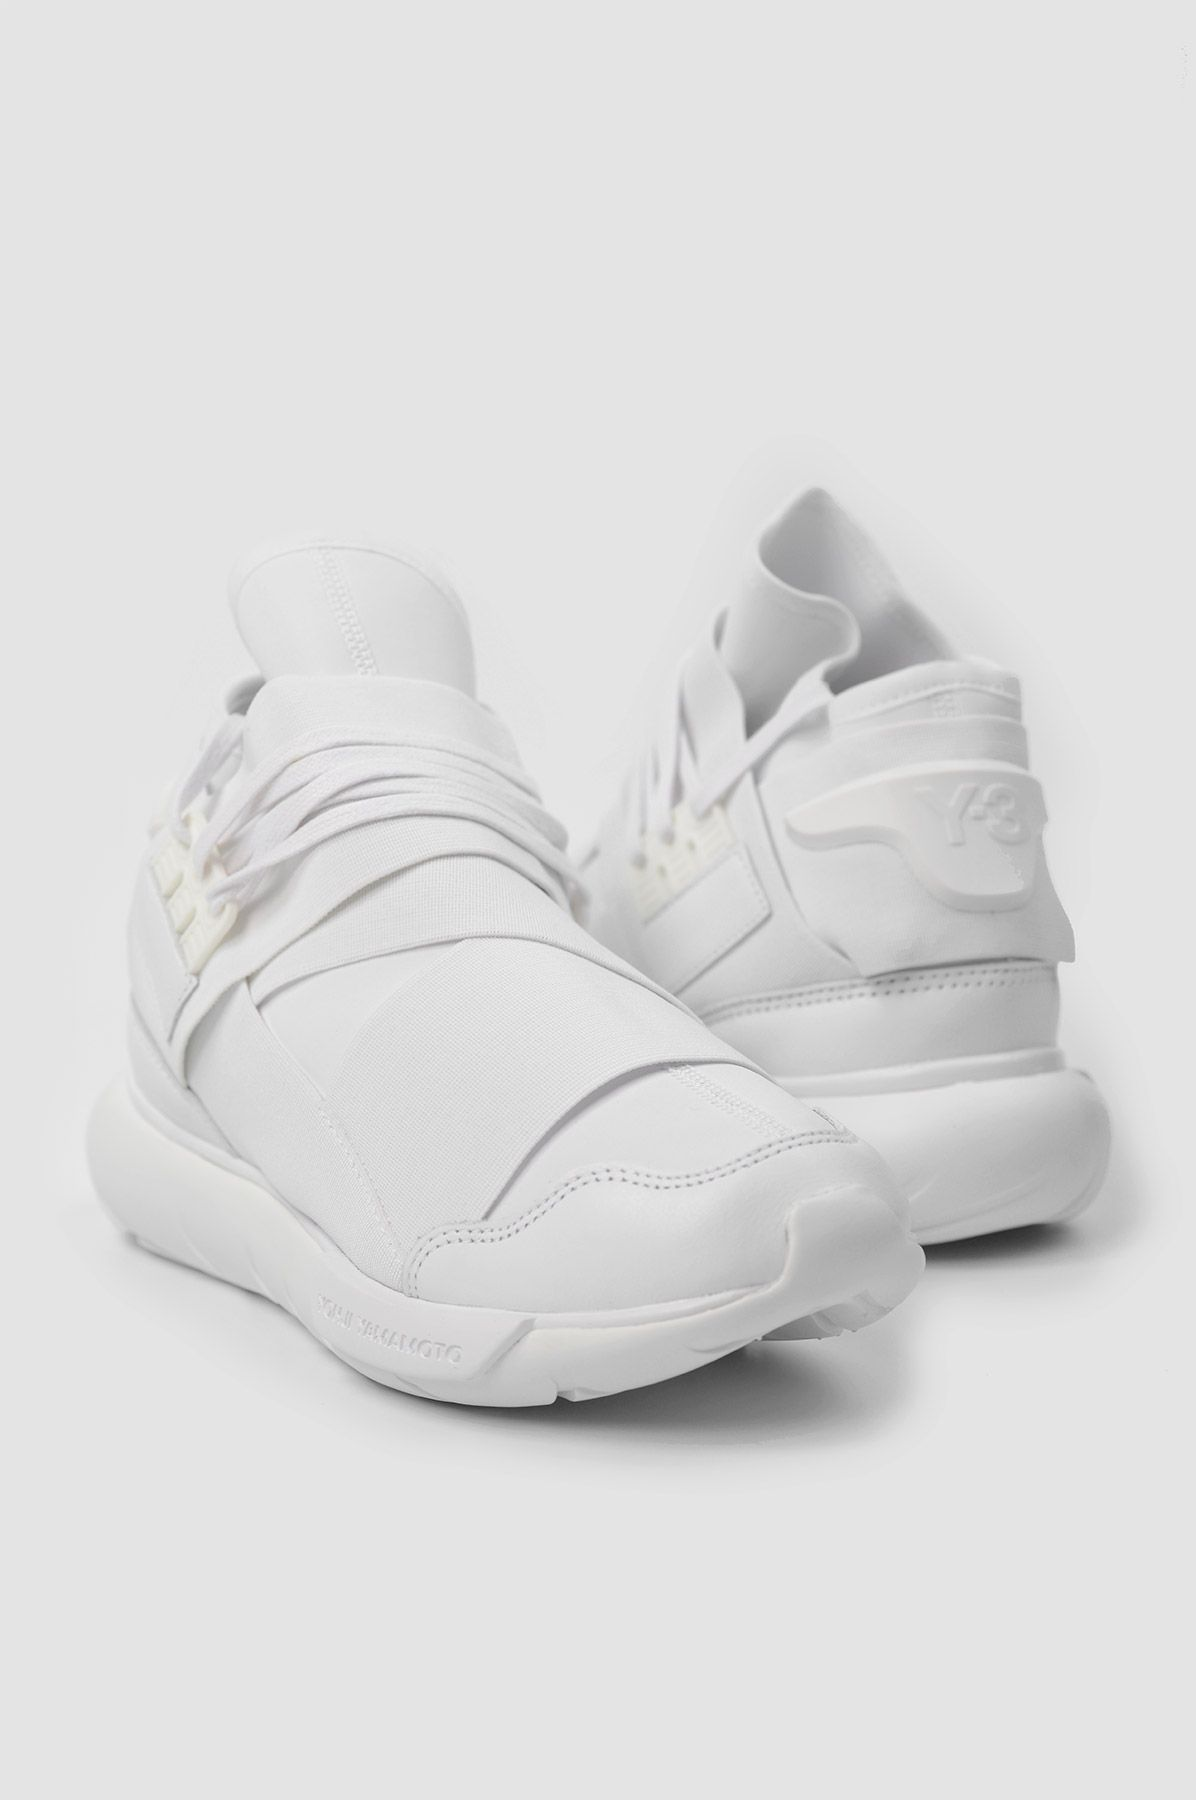 b1d7d46362593 SY-3 Qasa High White Sneakers. The SS16 Y-3 Qasa High takes the hi ...